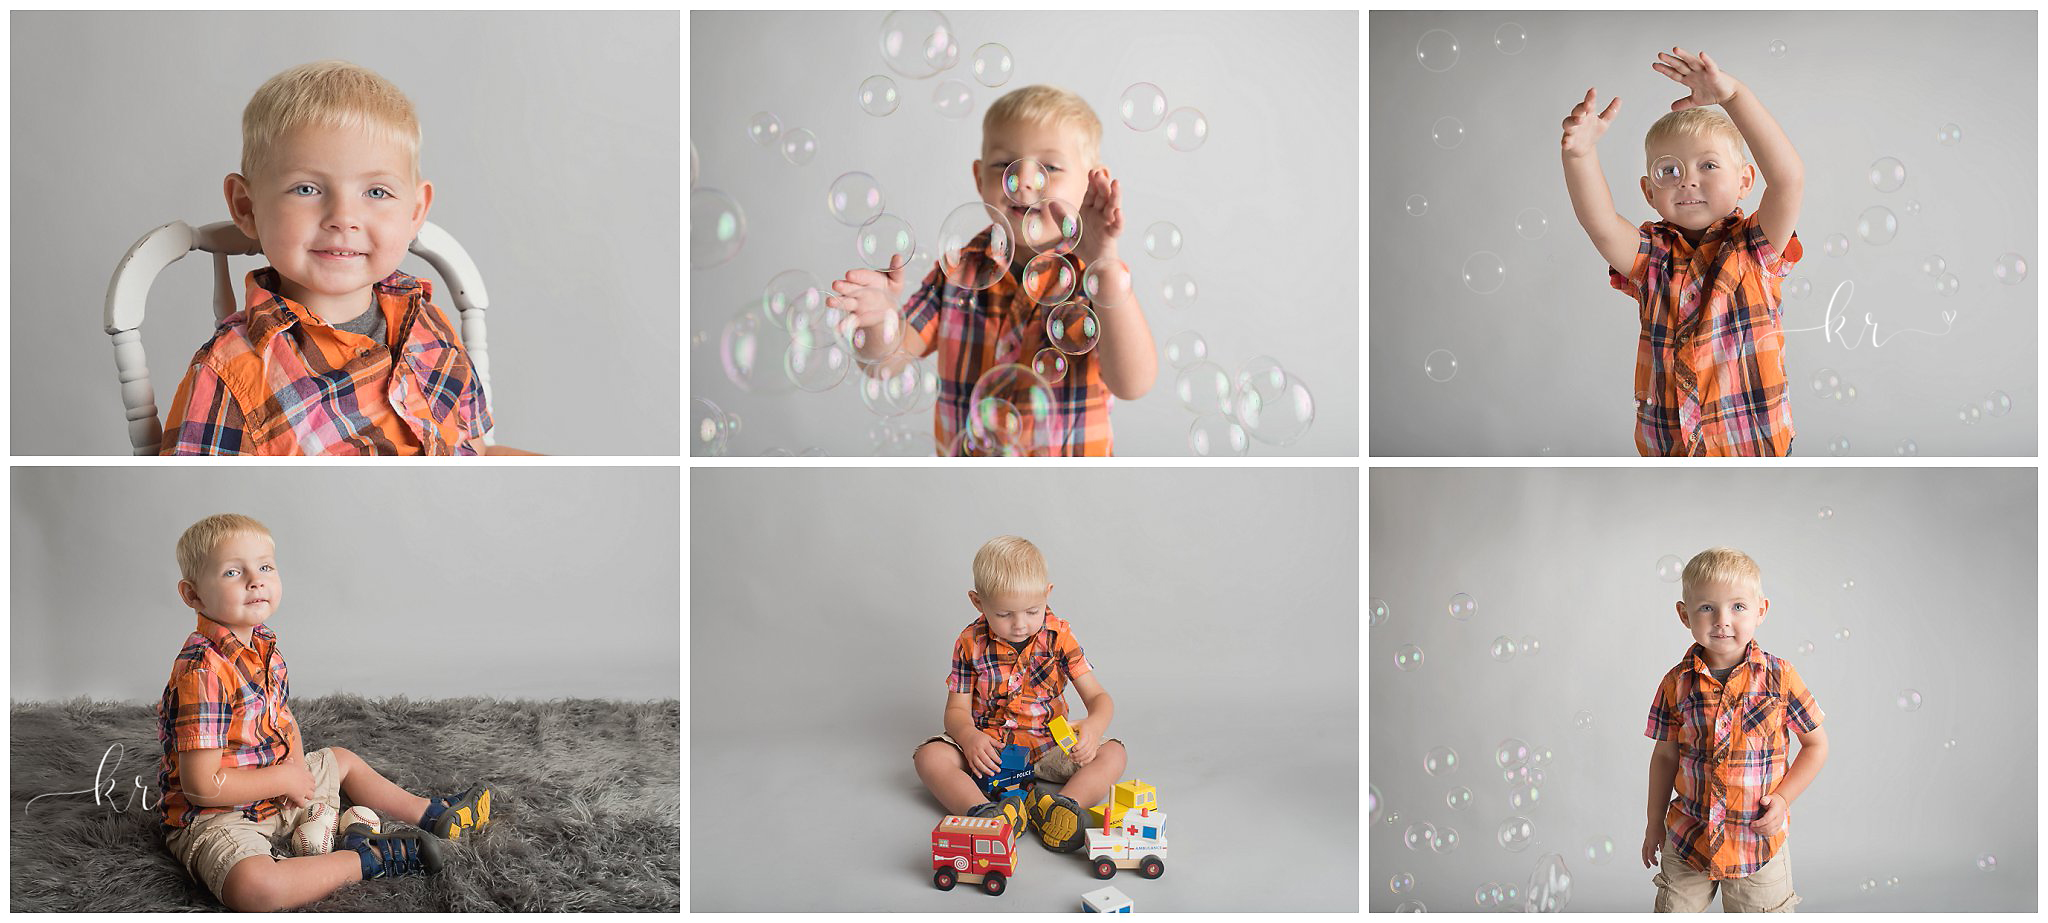 Ridenour_Kathy Rogers Photography_Beautifully Different_Children Photographer in Amherst_little boy_Xq28 duplication syndrome